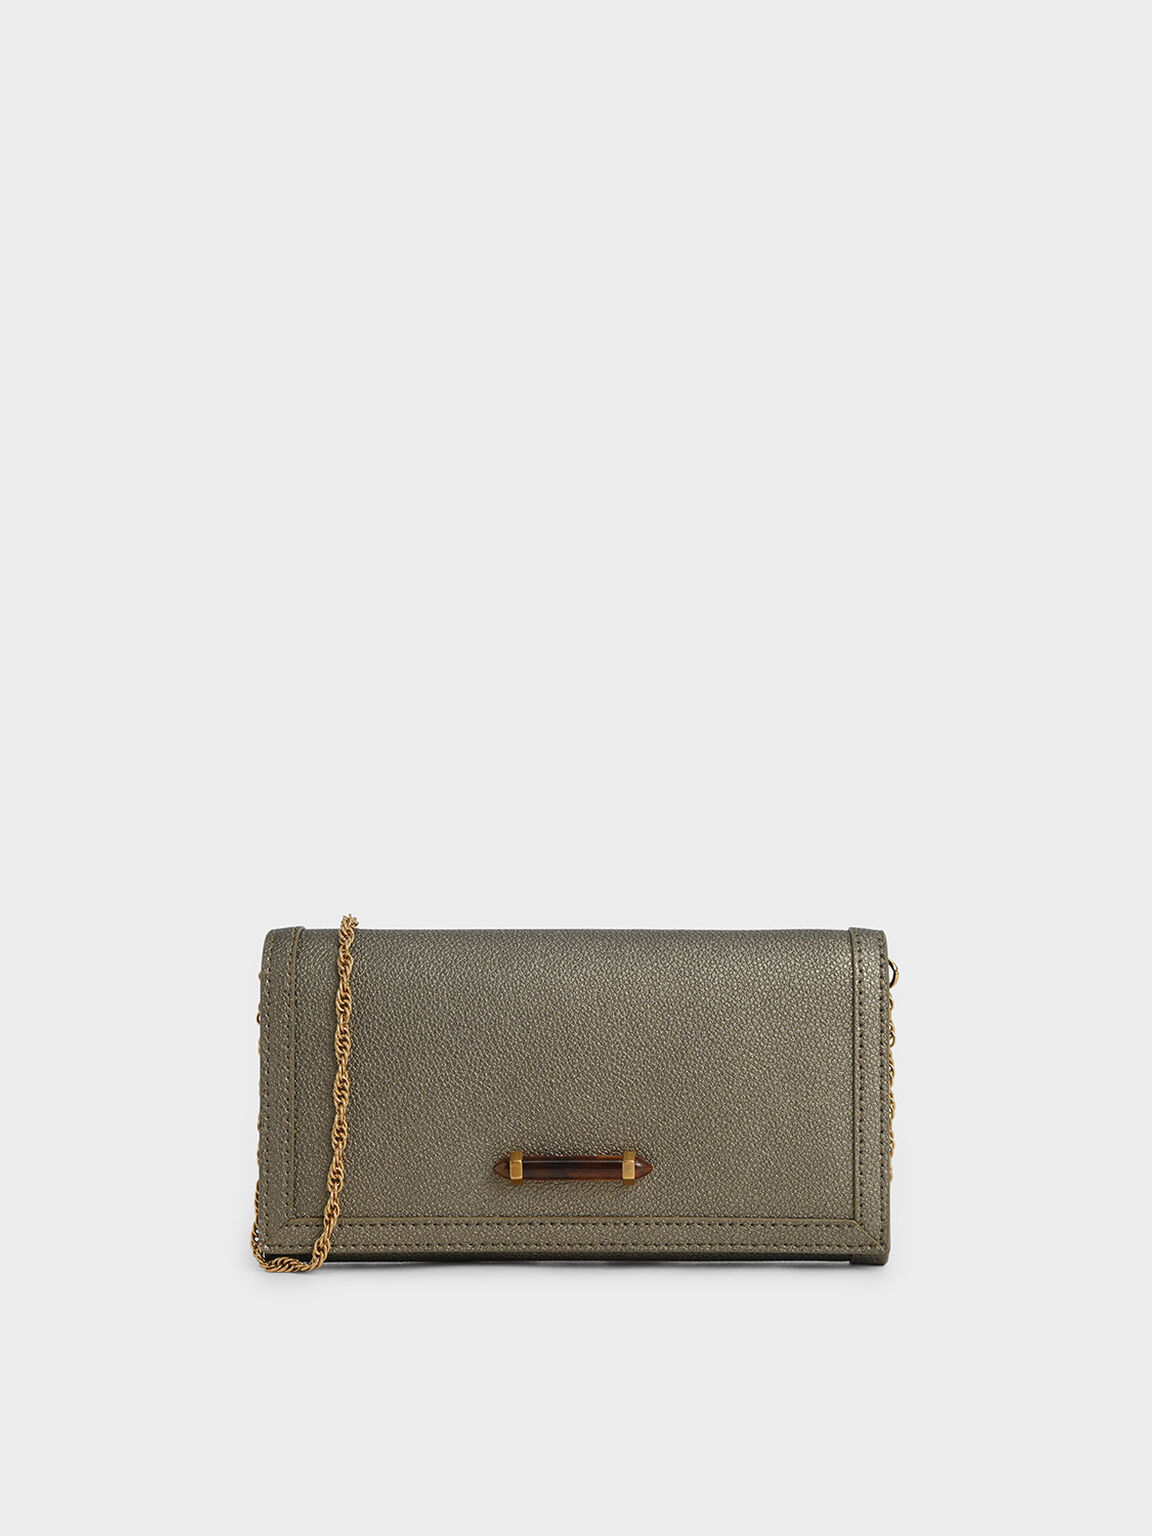 Stone-Embellished Front Flap Long Wallet, Bronze, hi-res